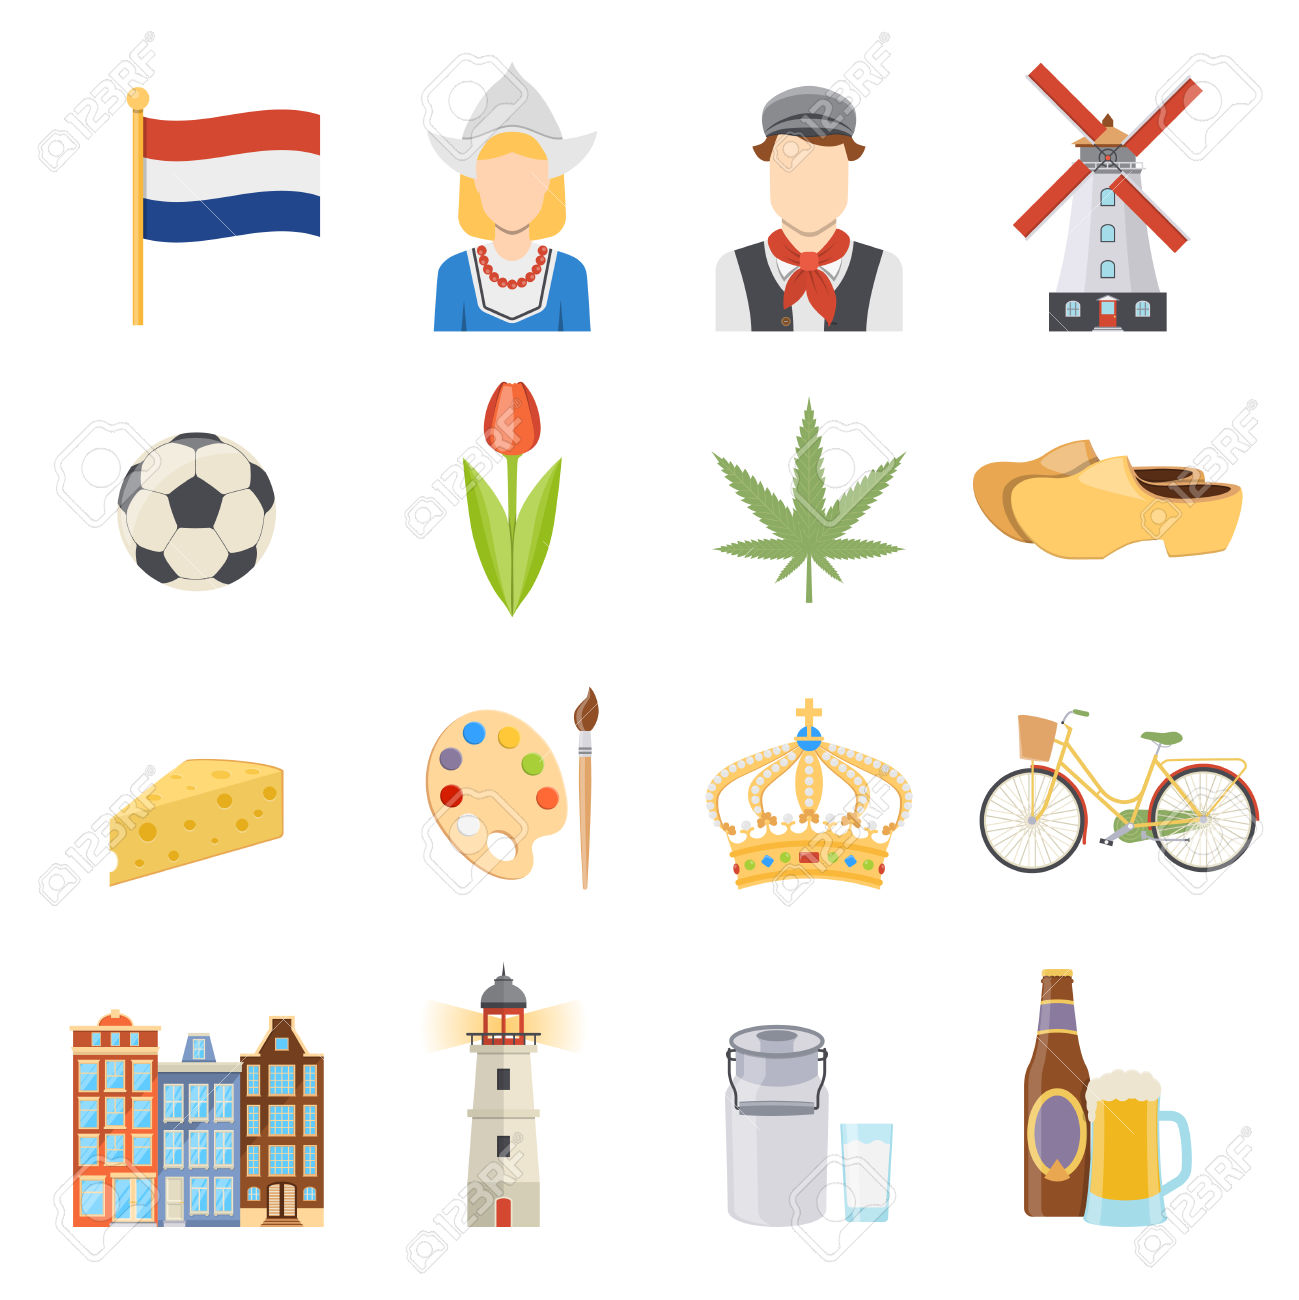 The Netherlands clipart #6, Download drawings